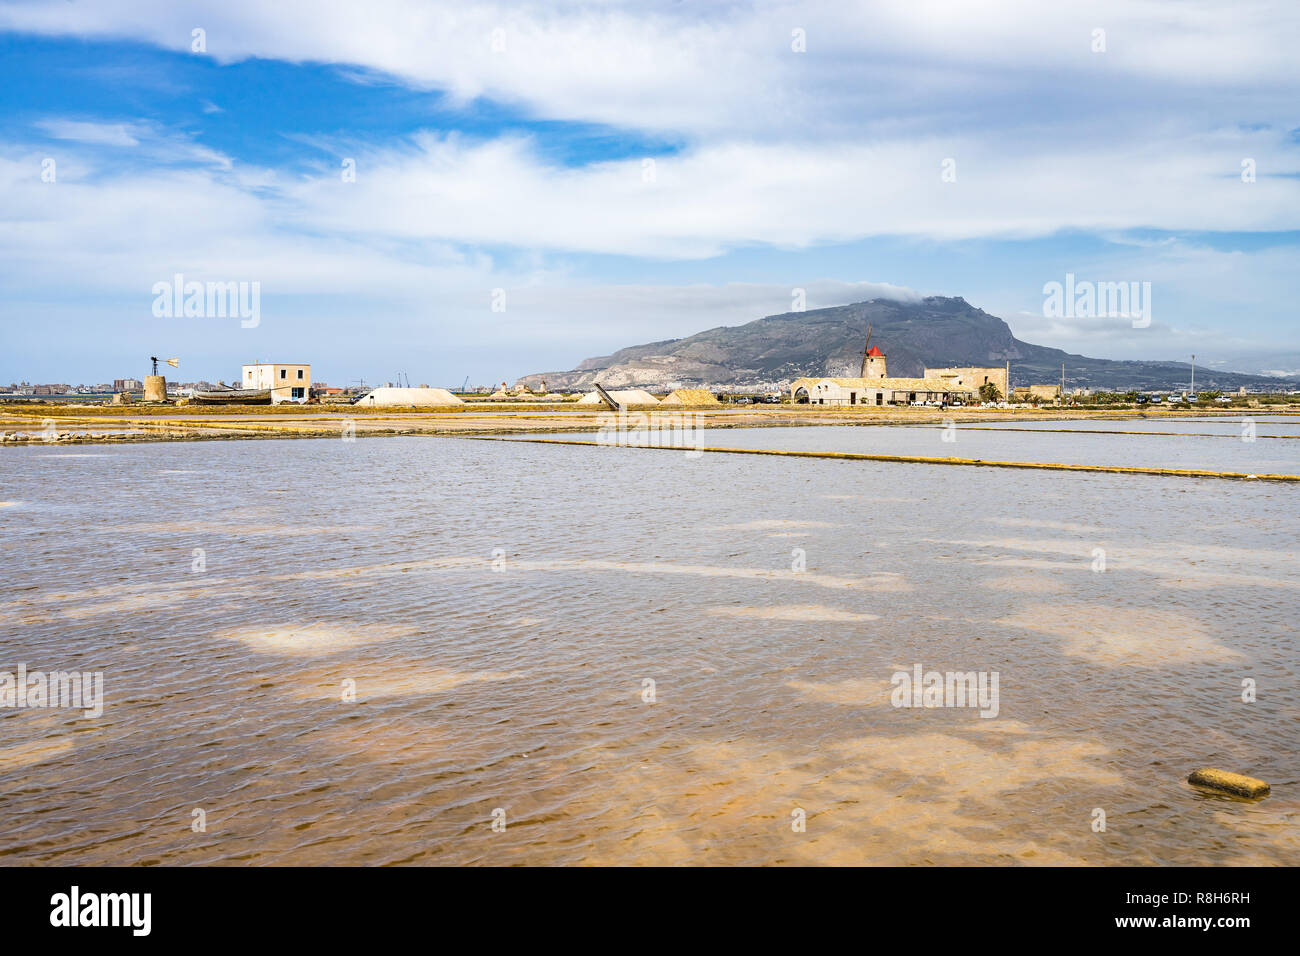 Amazing landscape of Trapani saline with windmills and Mount Erice in the background, Sicily, Italy Stock Photo